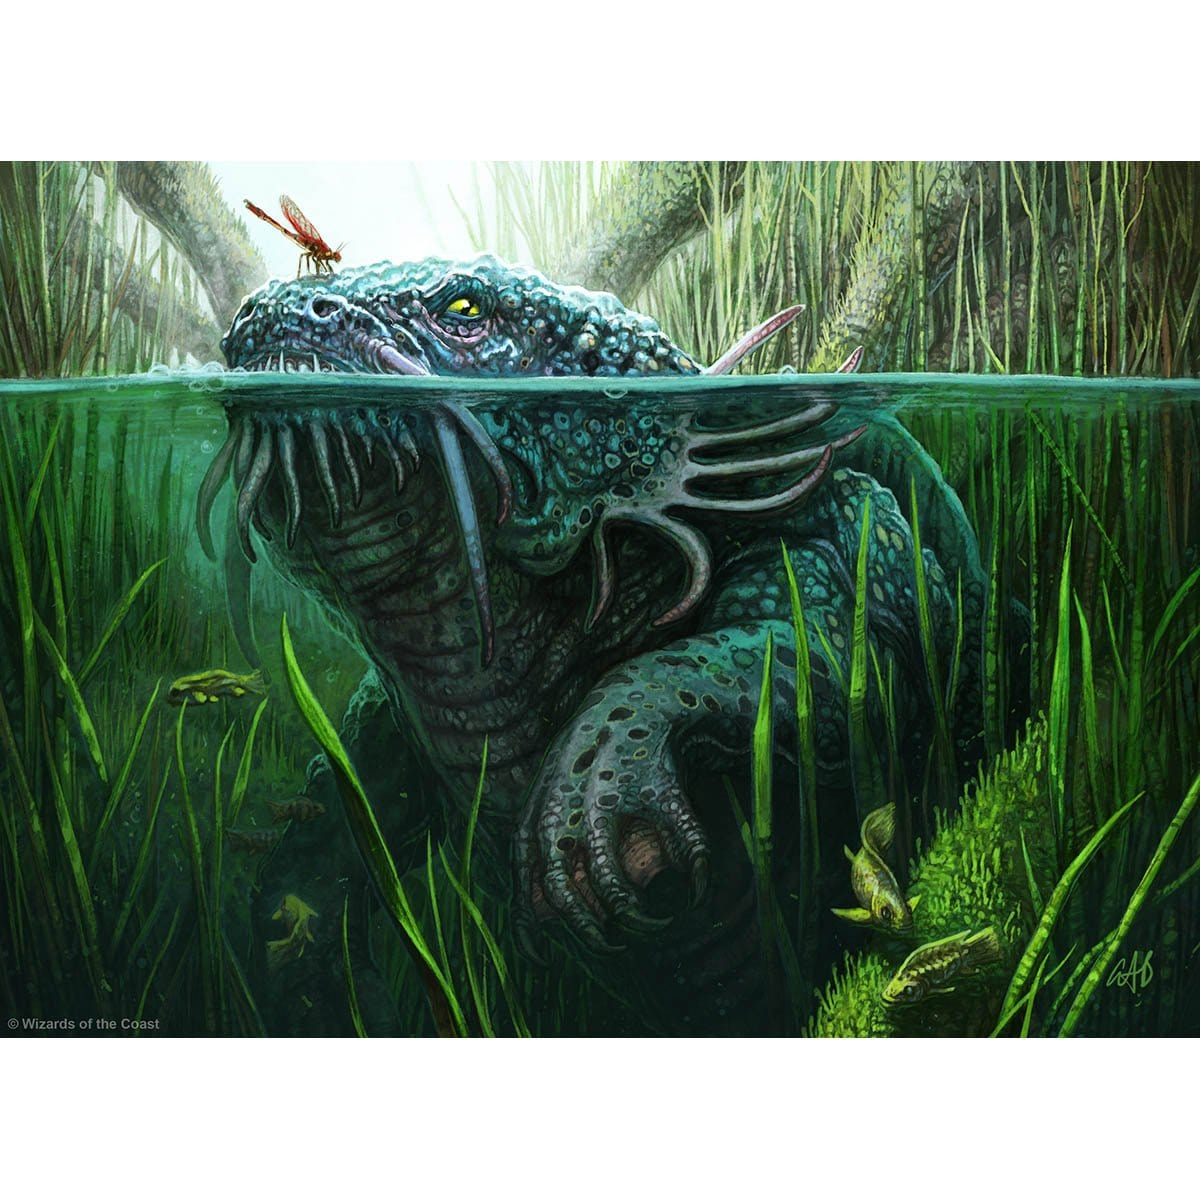 Gudul Lurker Print - Print - Original Magic Art - Accessories for Magic the Gathering and other card games